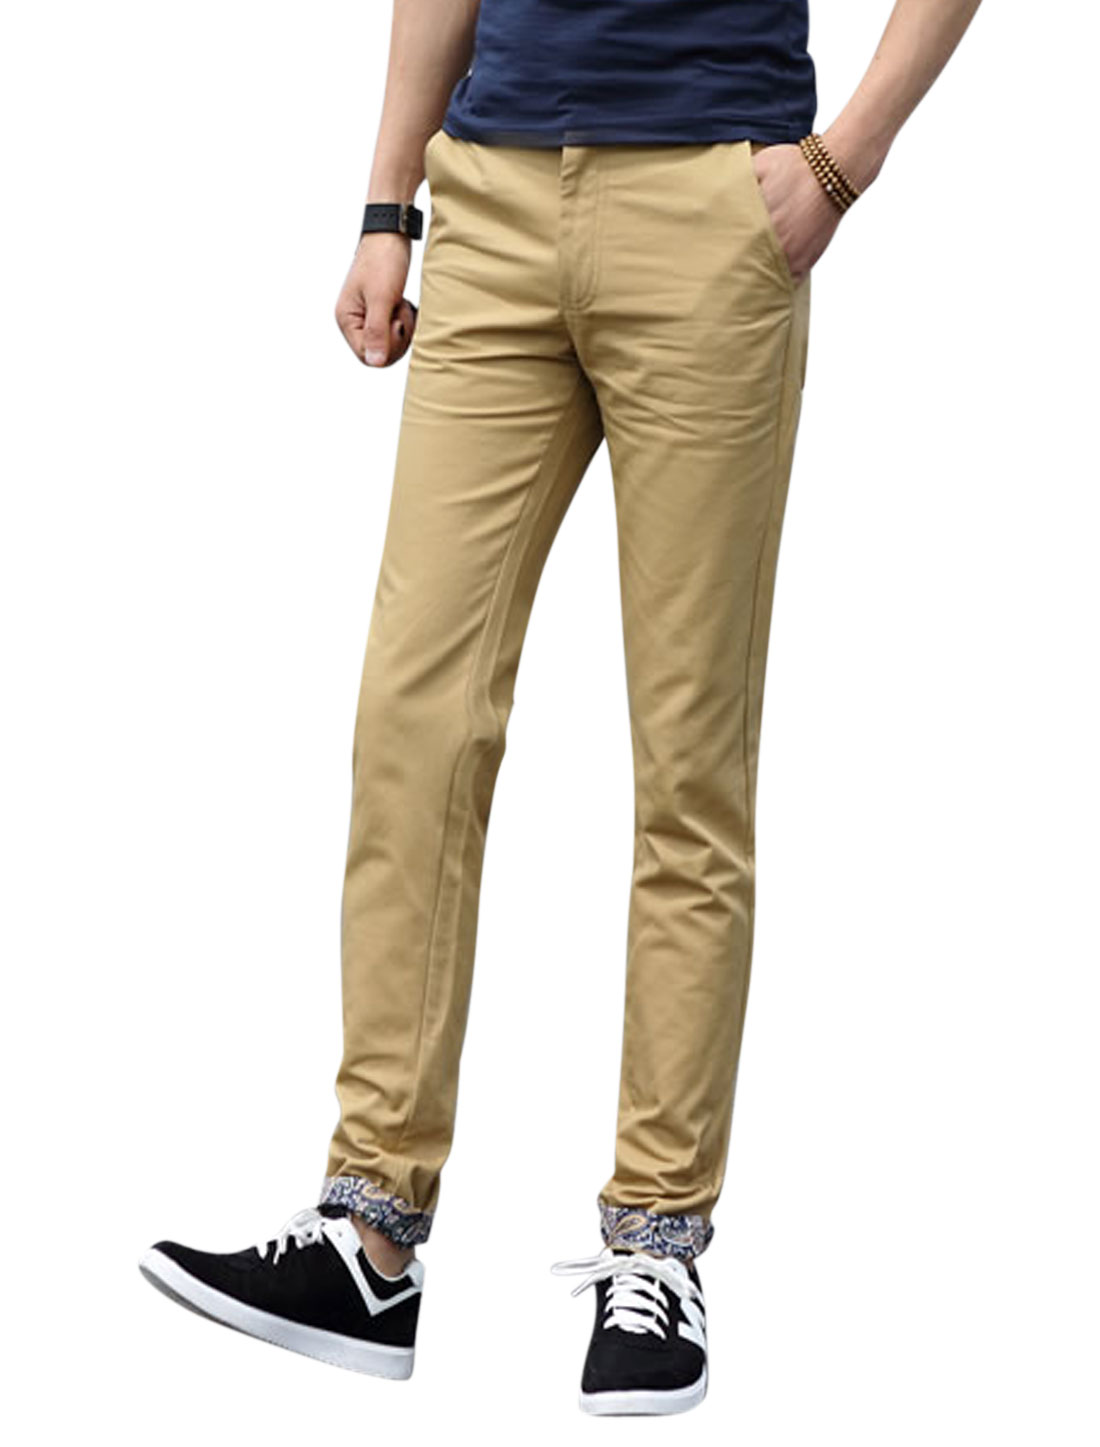 Men Button Fastening Mid Rise Four Pockets Belt Loop Casual Pants Khaki W40